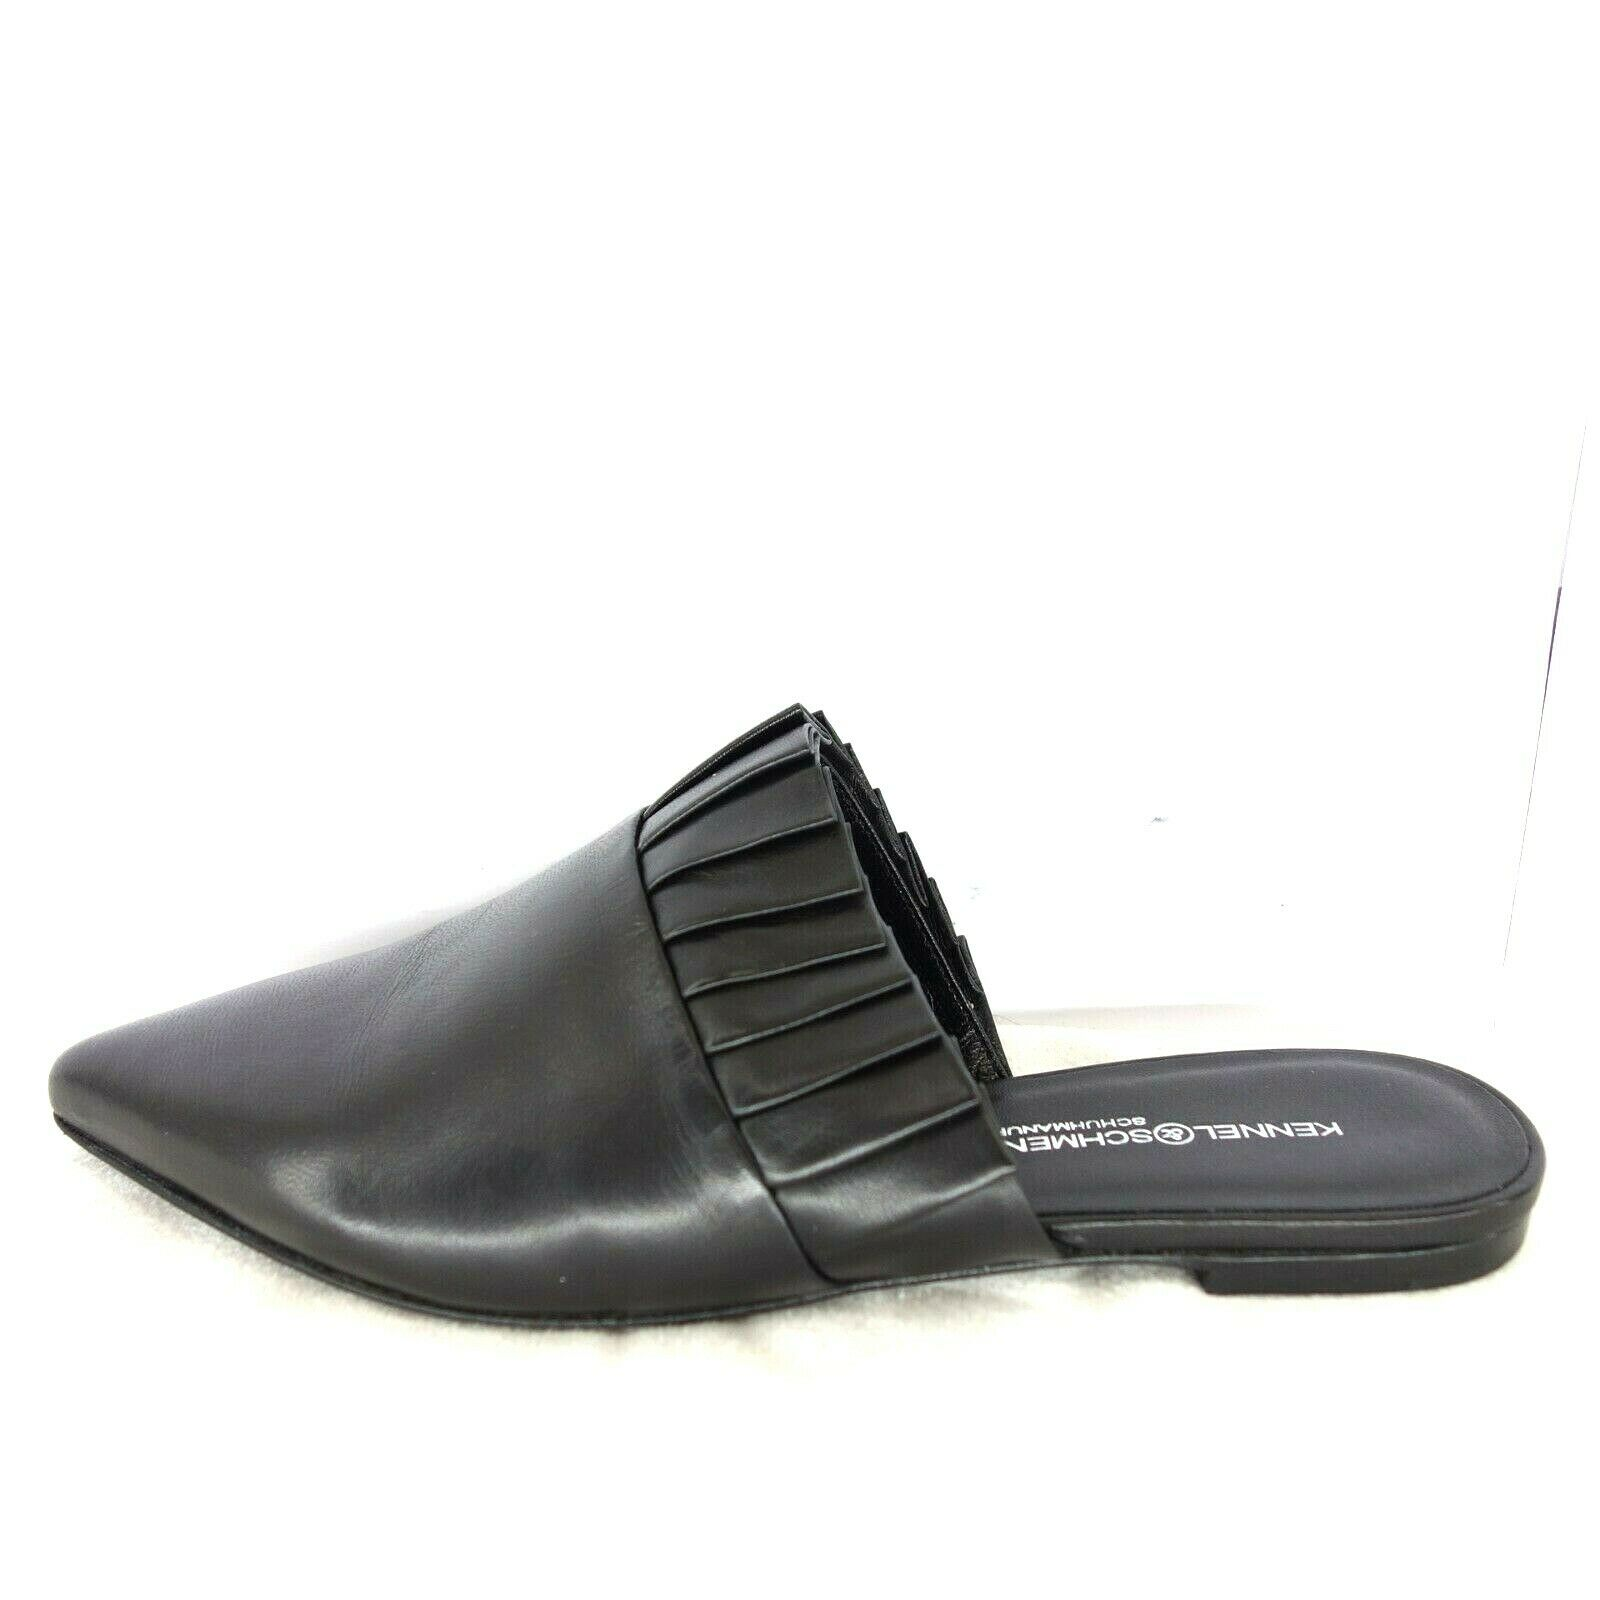 Kenkel &rschmenger  scarpe signore loafer mules sandals Zone Leather NP 199 NUOVO  offerta speciale